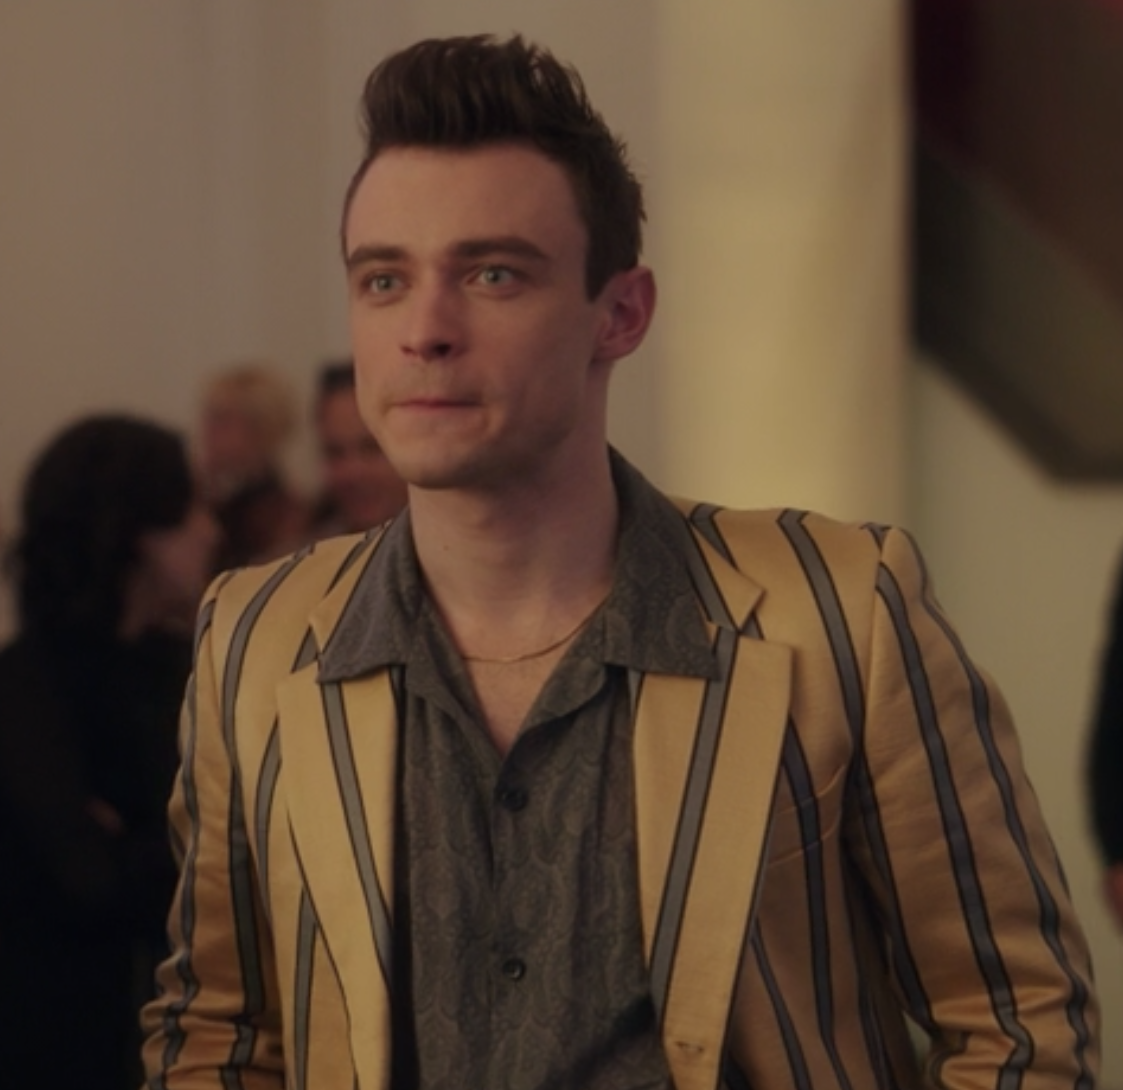 Max wears a tight-fitting pin-striped blazer over a paisley patterned button-up shirt